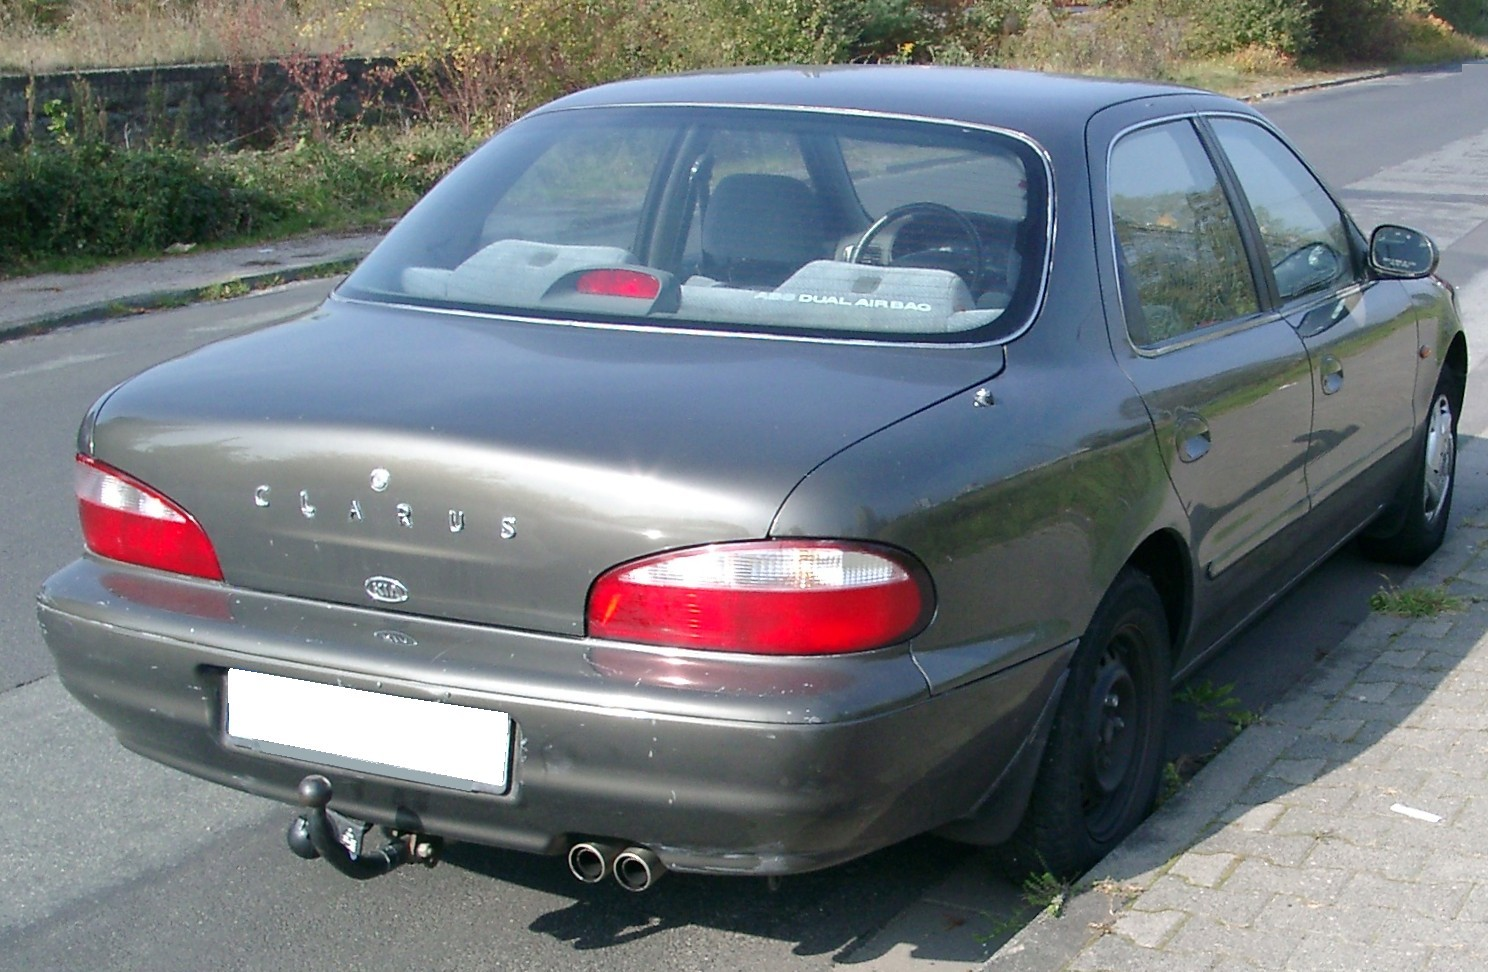 File:Kia Clarus rear 20071011.jpg - Wikimedia Commons